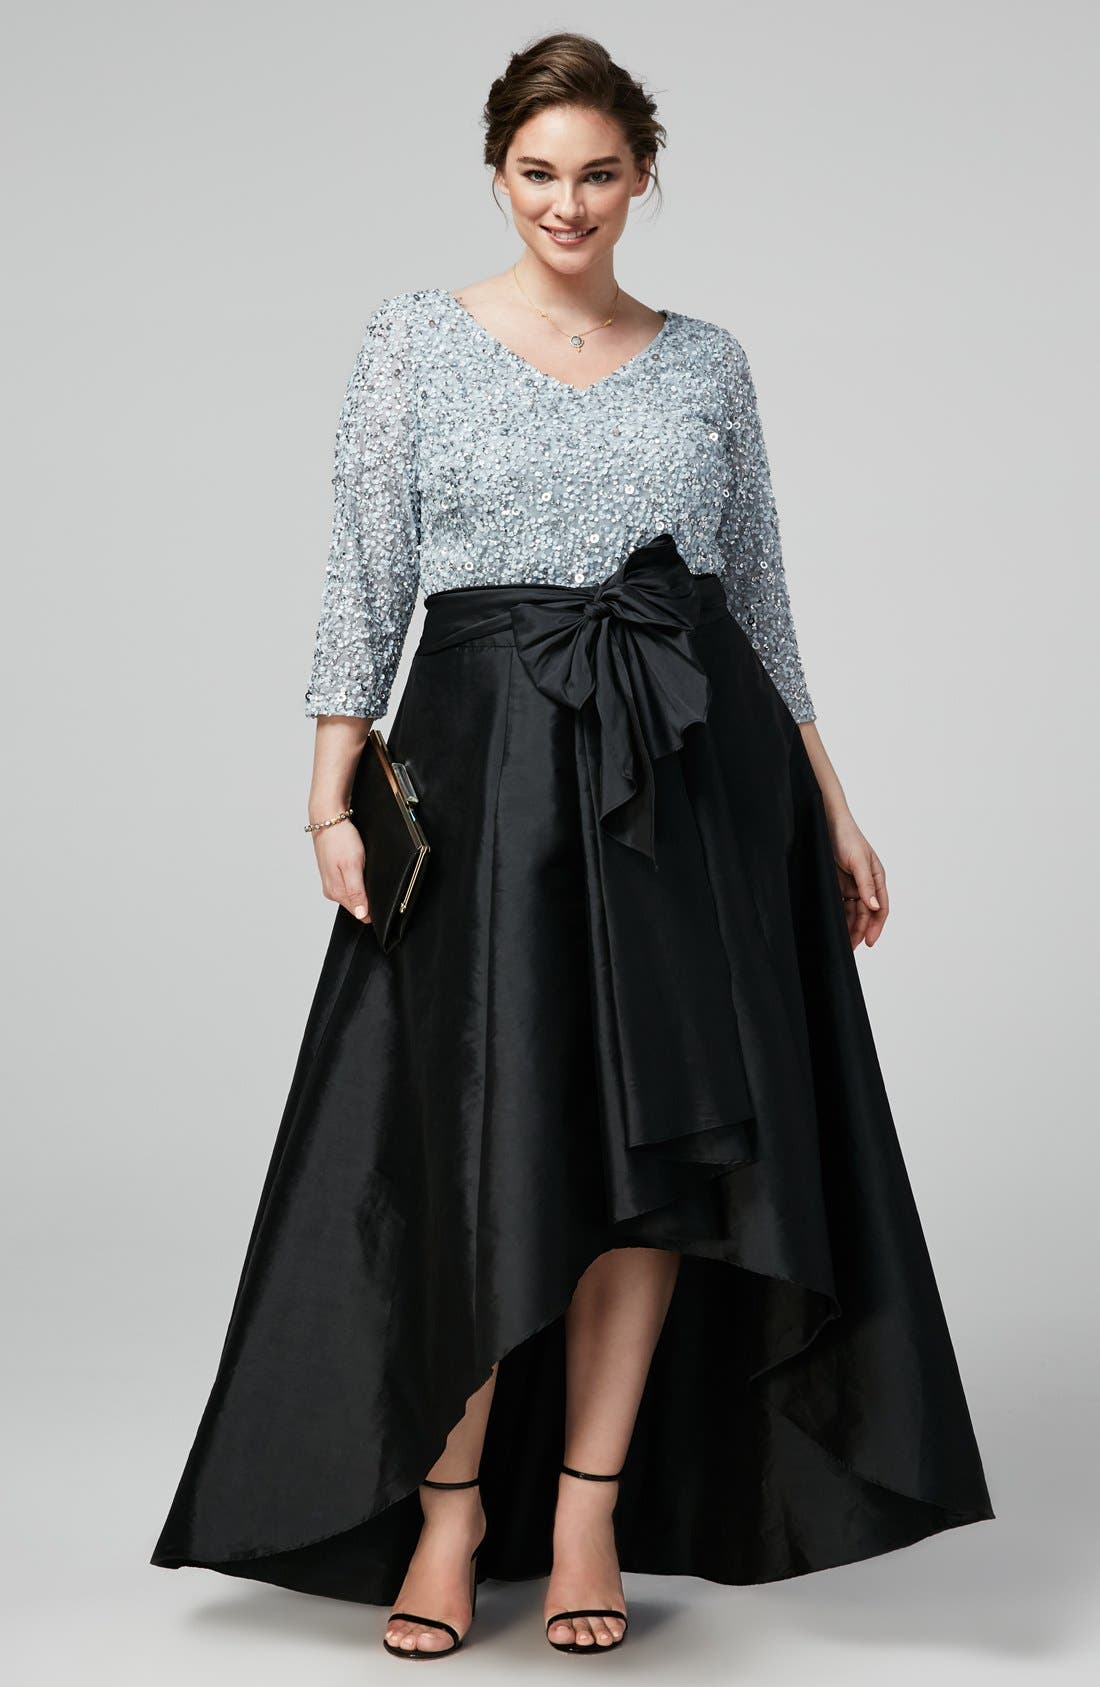 Exclusively chic Adrianna Papell Sequin Top Taffeta Skirt Plus Size